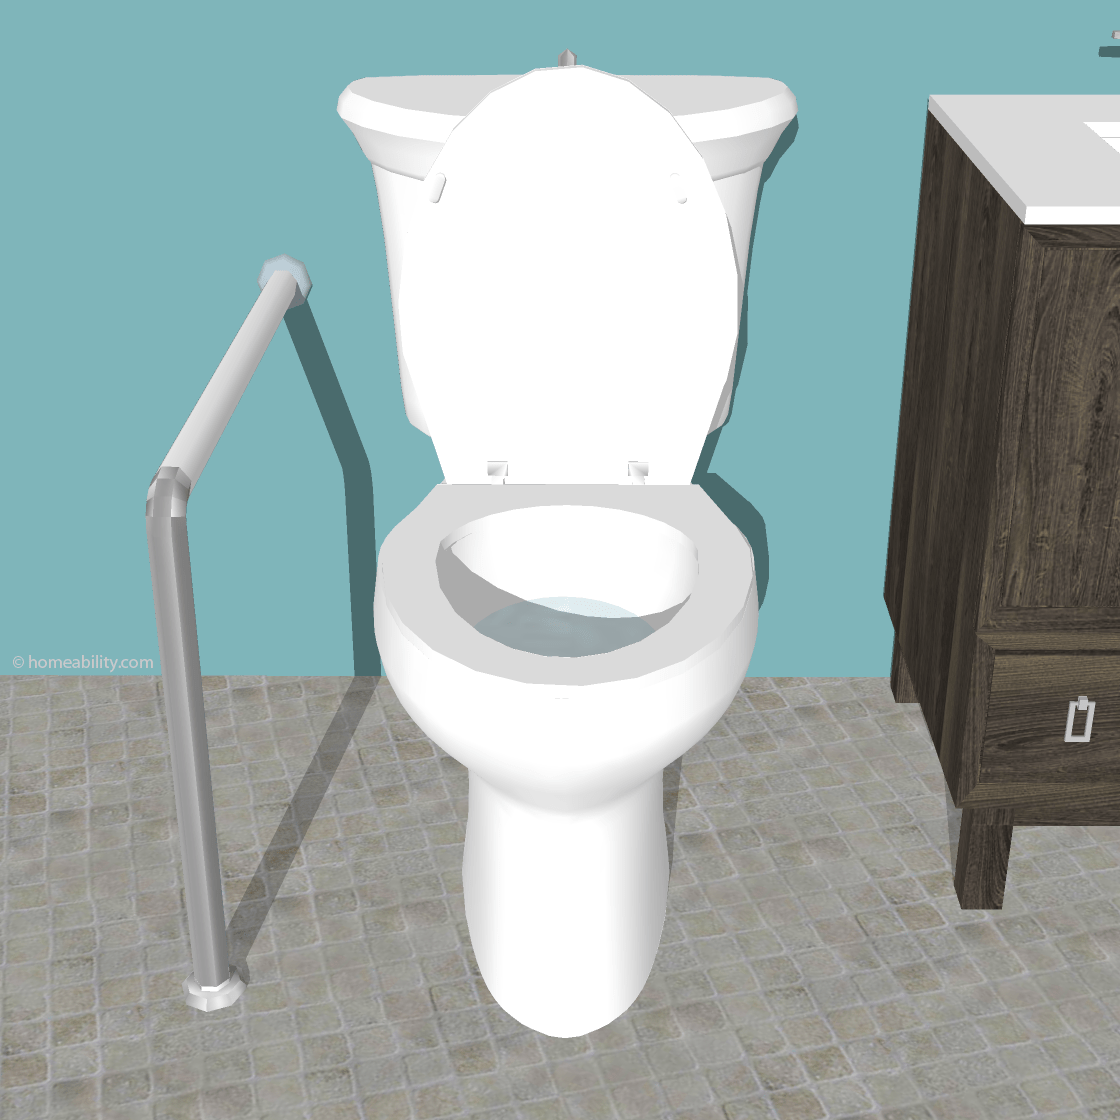 difference between shower chair and tub transfer bench revolving jodhpur toilet rails which type is best homeability